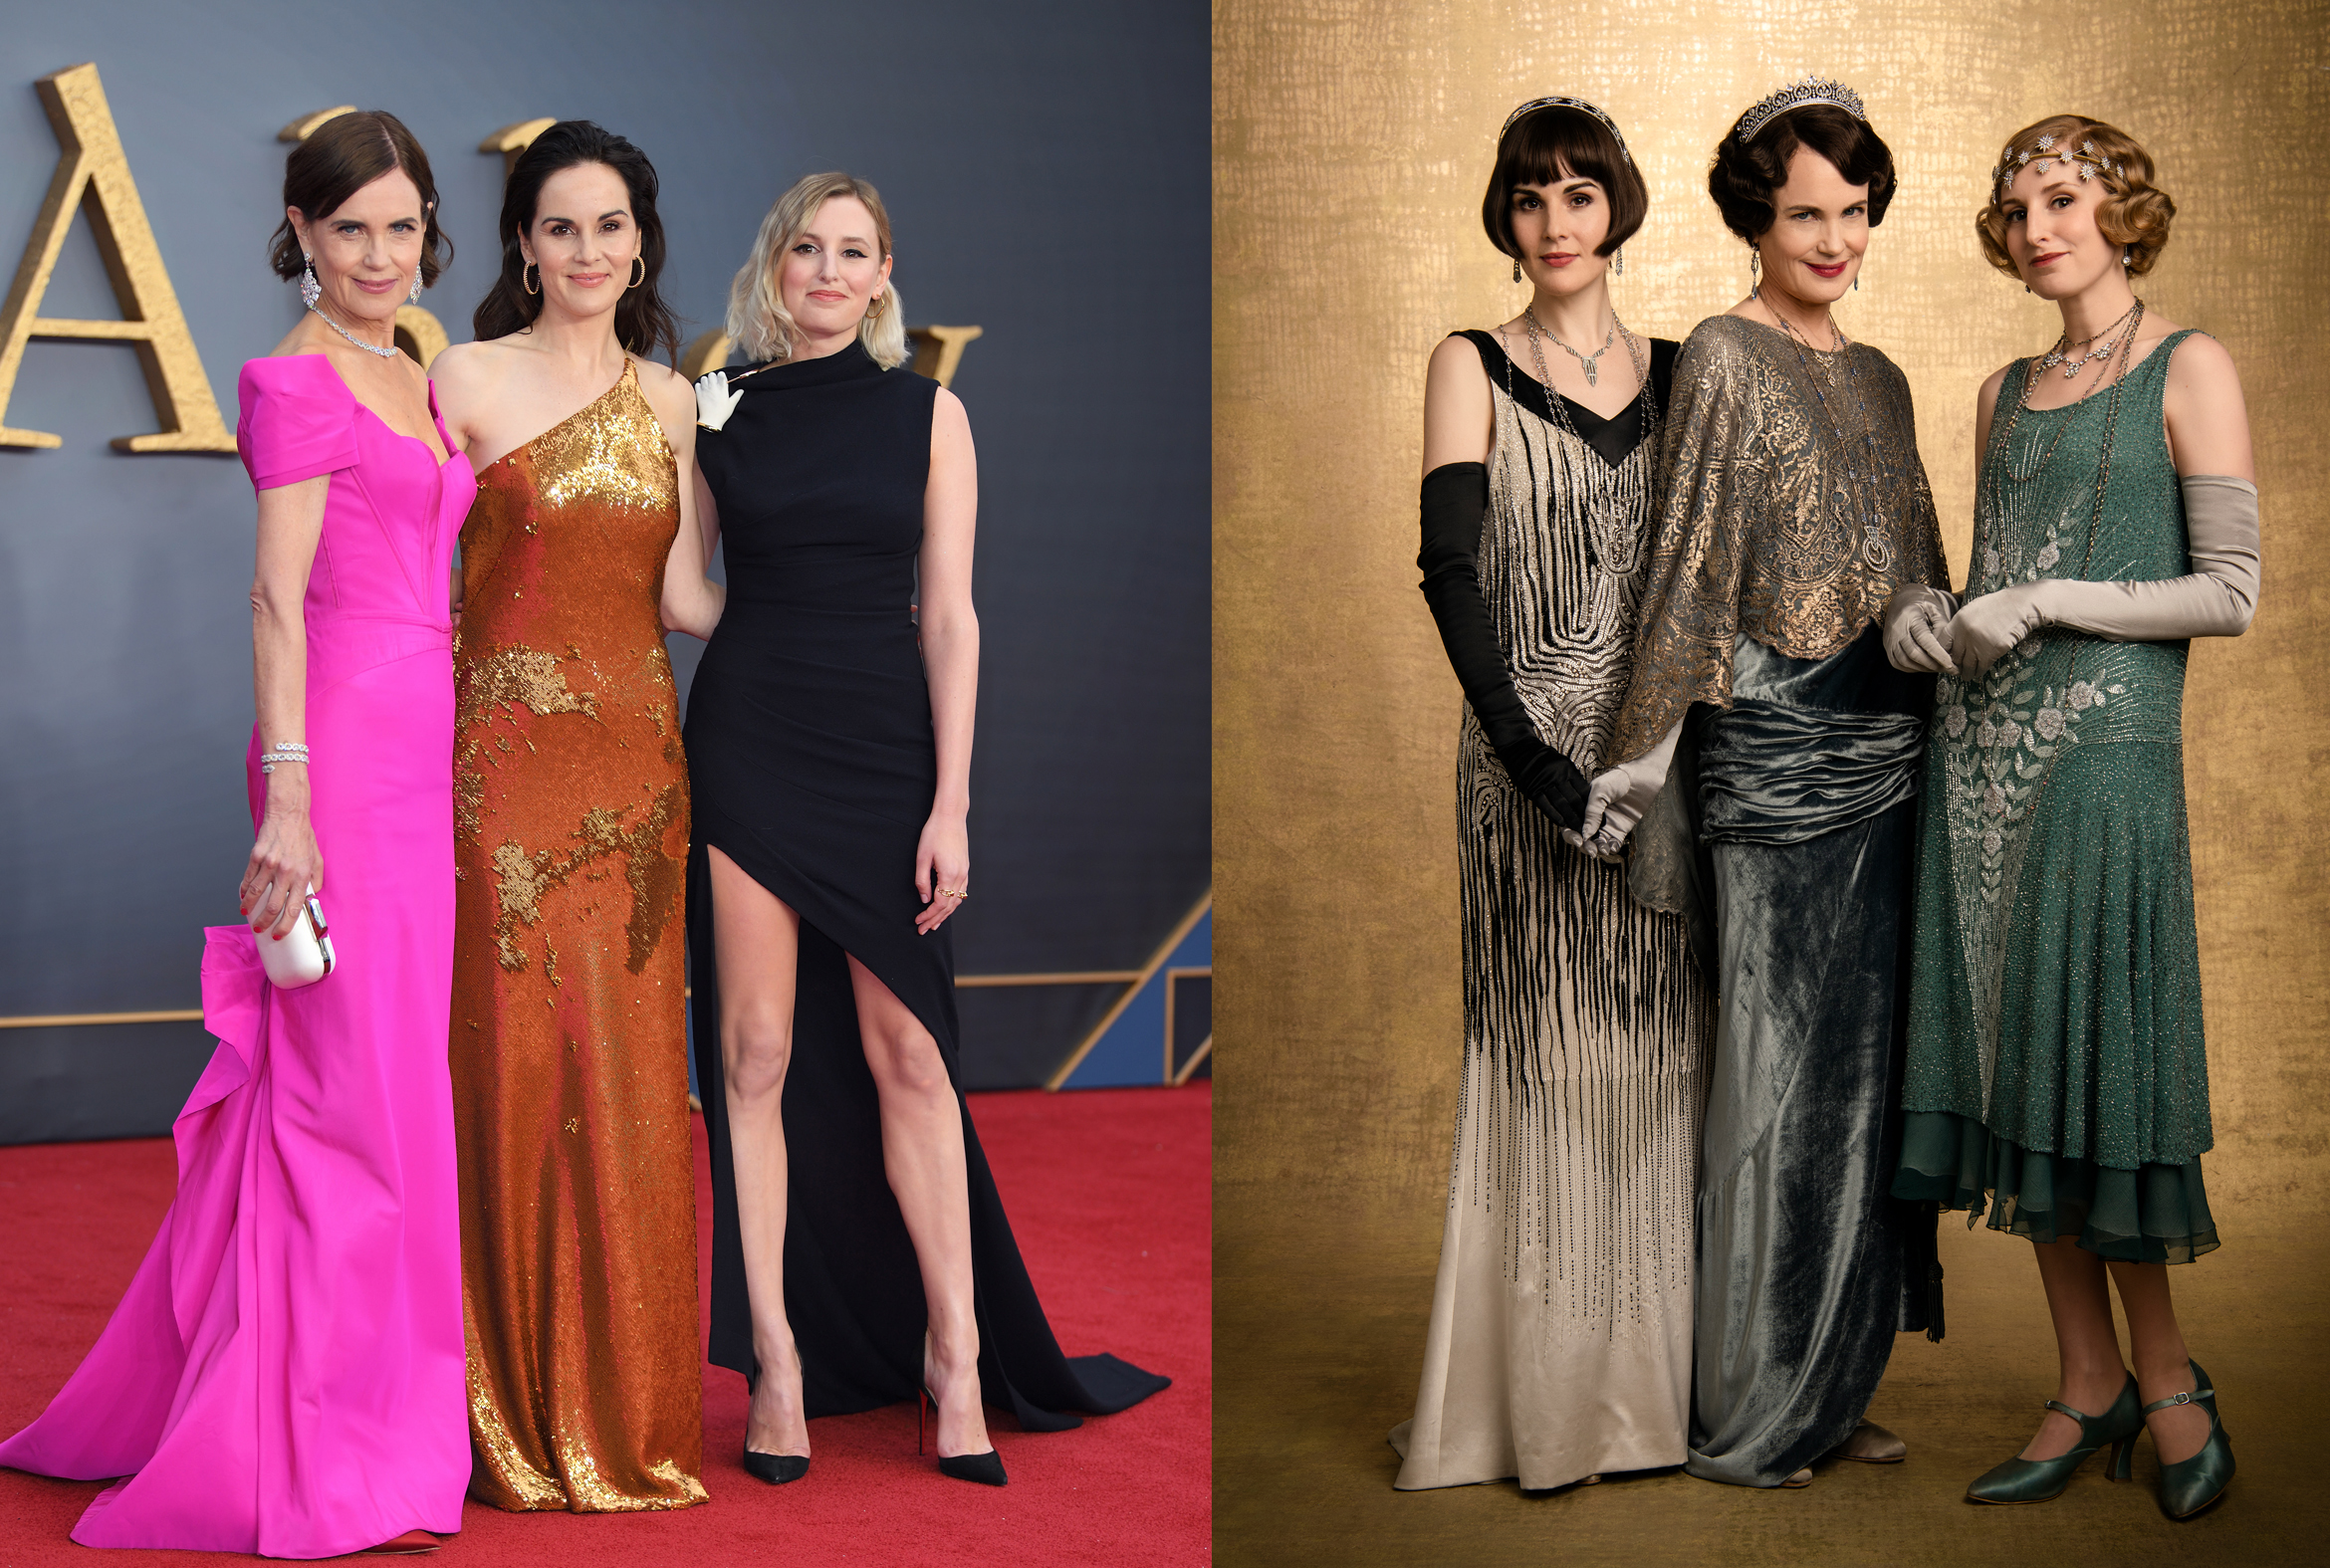 Elizabeth McGovern, Michelle Dockery, and Laura Carmichael as the Ladies of Downton